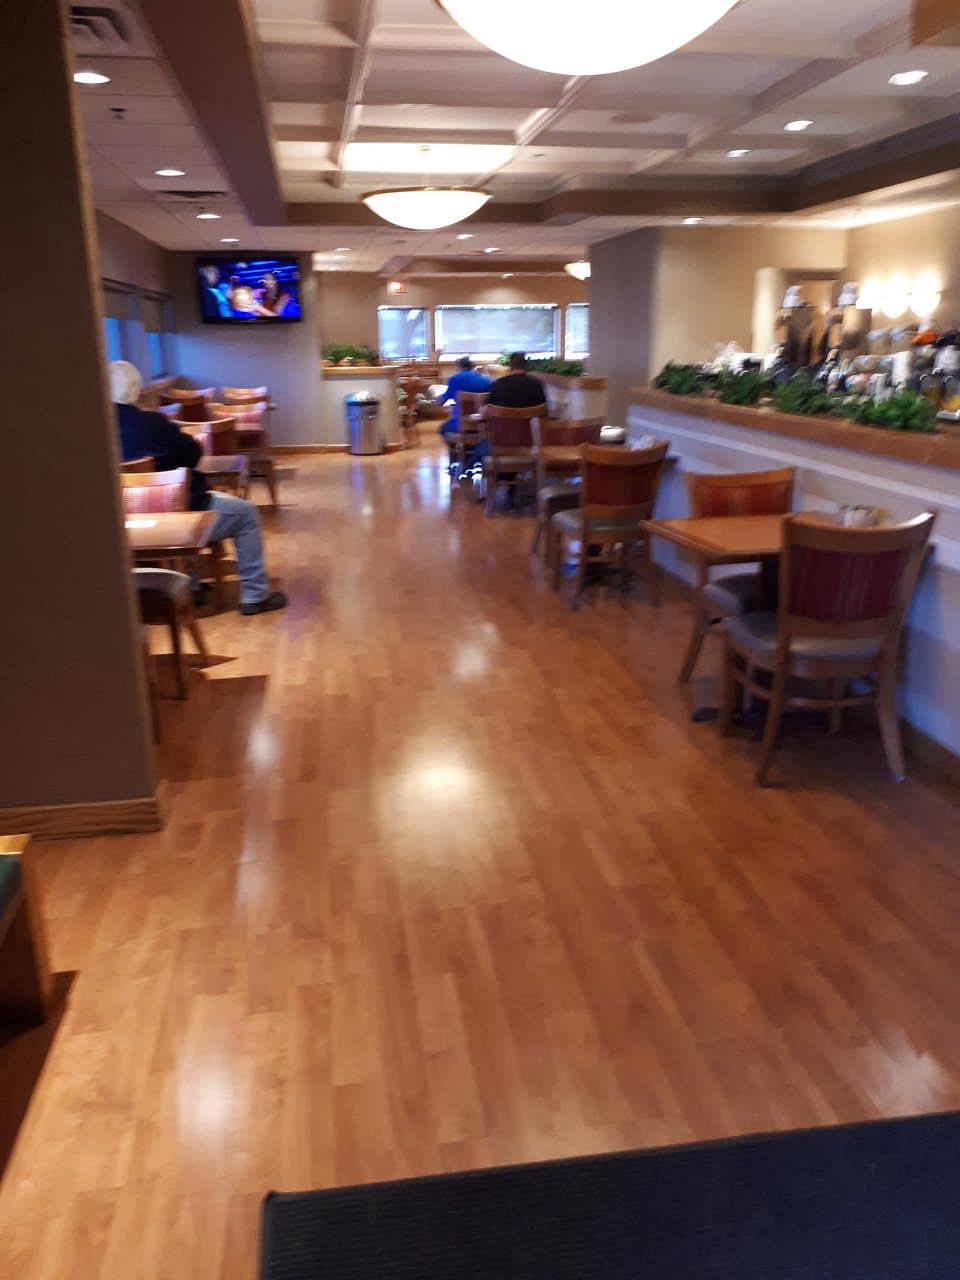 top quality hardwood flooring bridgeview of quality inn midway airport 89 i¶9i¶9i¶ updated 2018 prices intended for quality inn midway airport 89 i¶9i¶9i¶ updated 2018 prices hotel reviews chicago il tripadvisor